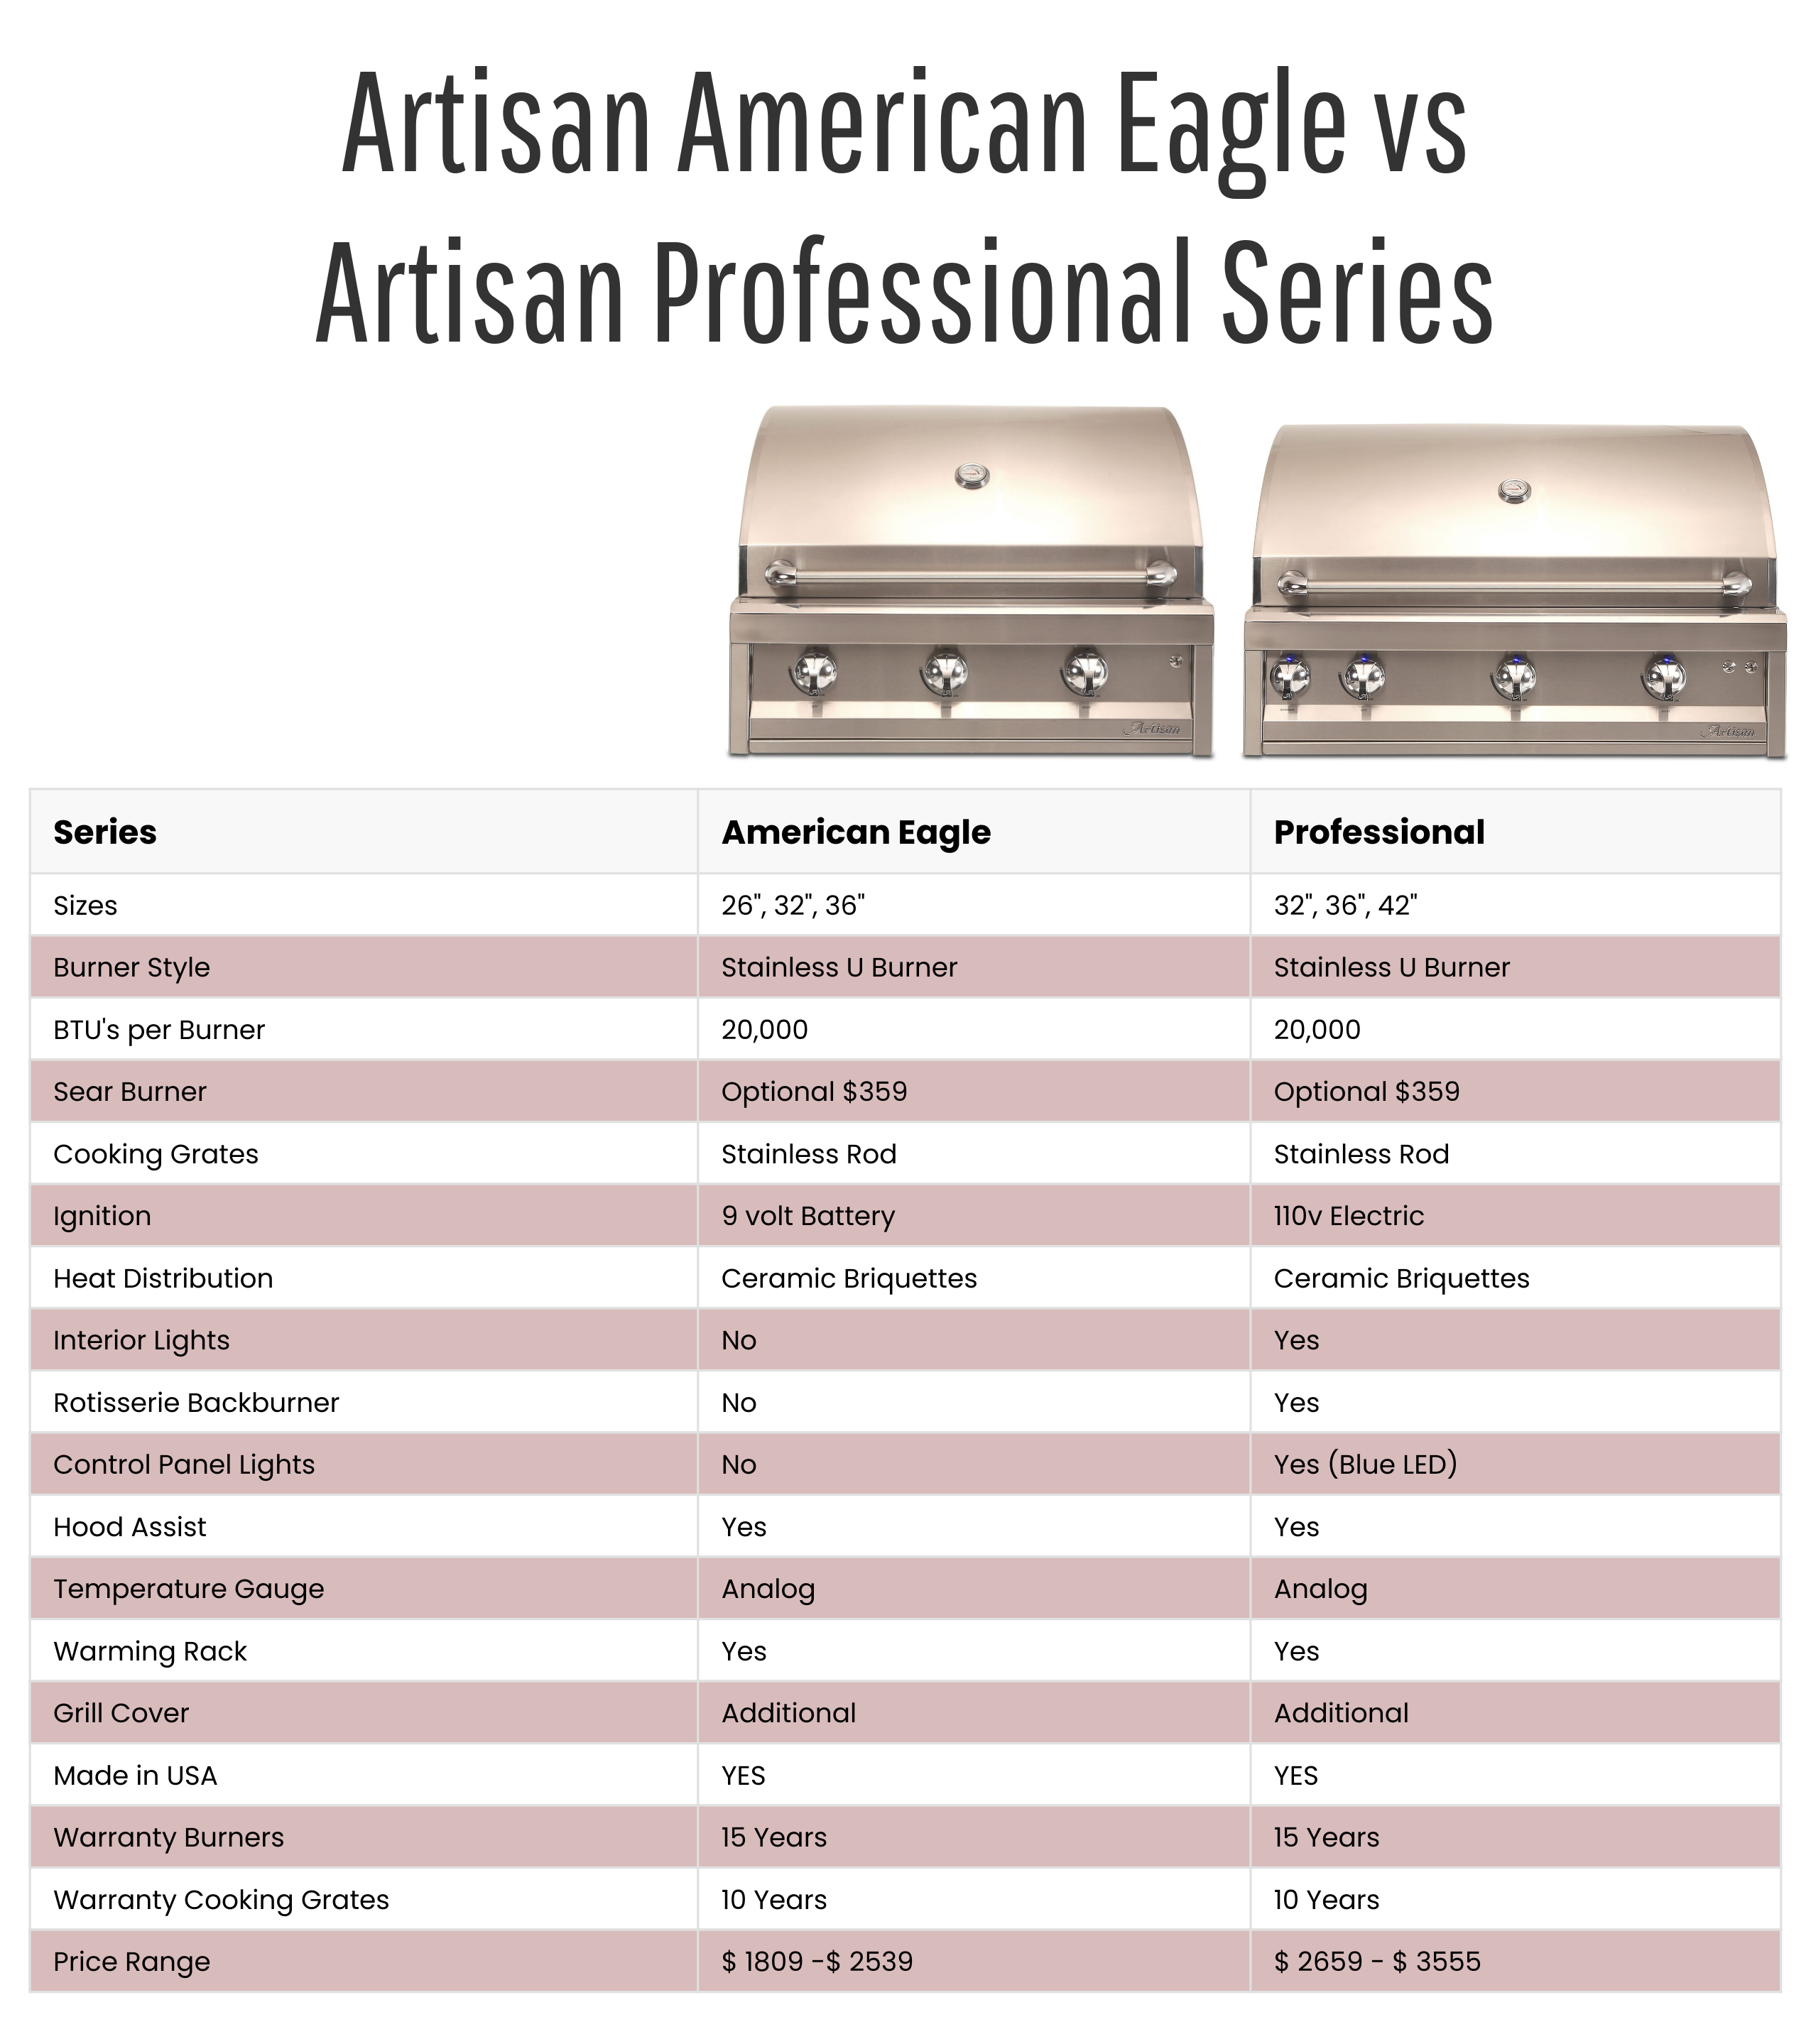 Artisan American Eagle vs Professional Series